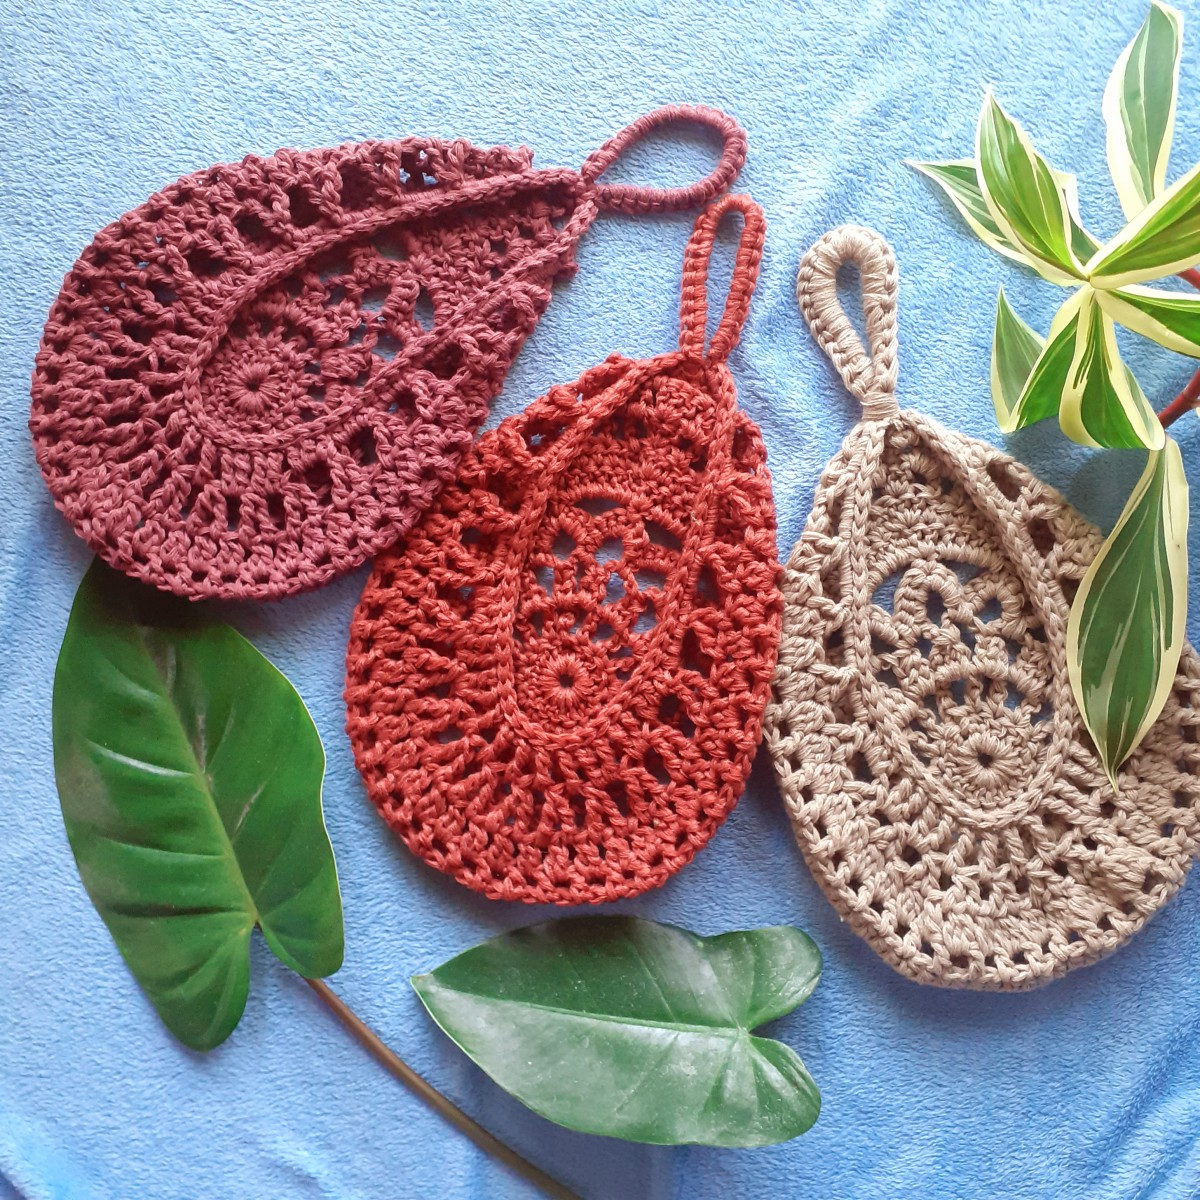 Crochet Teardrop Hanging Basket (Free Pattern)